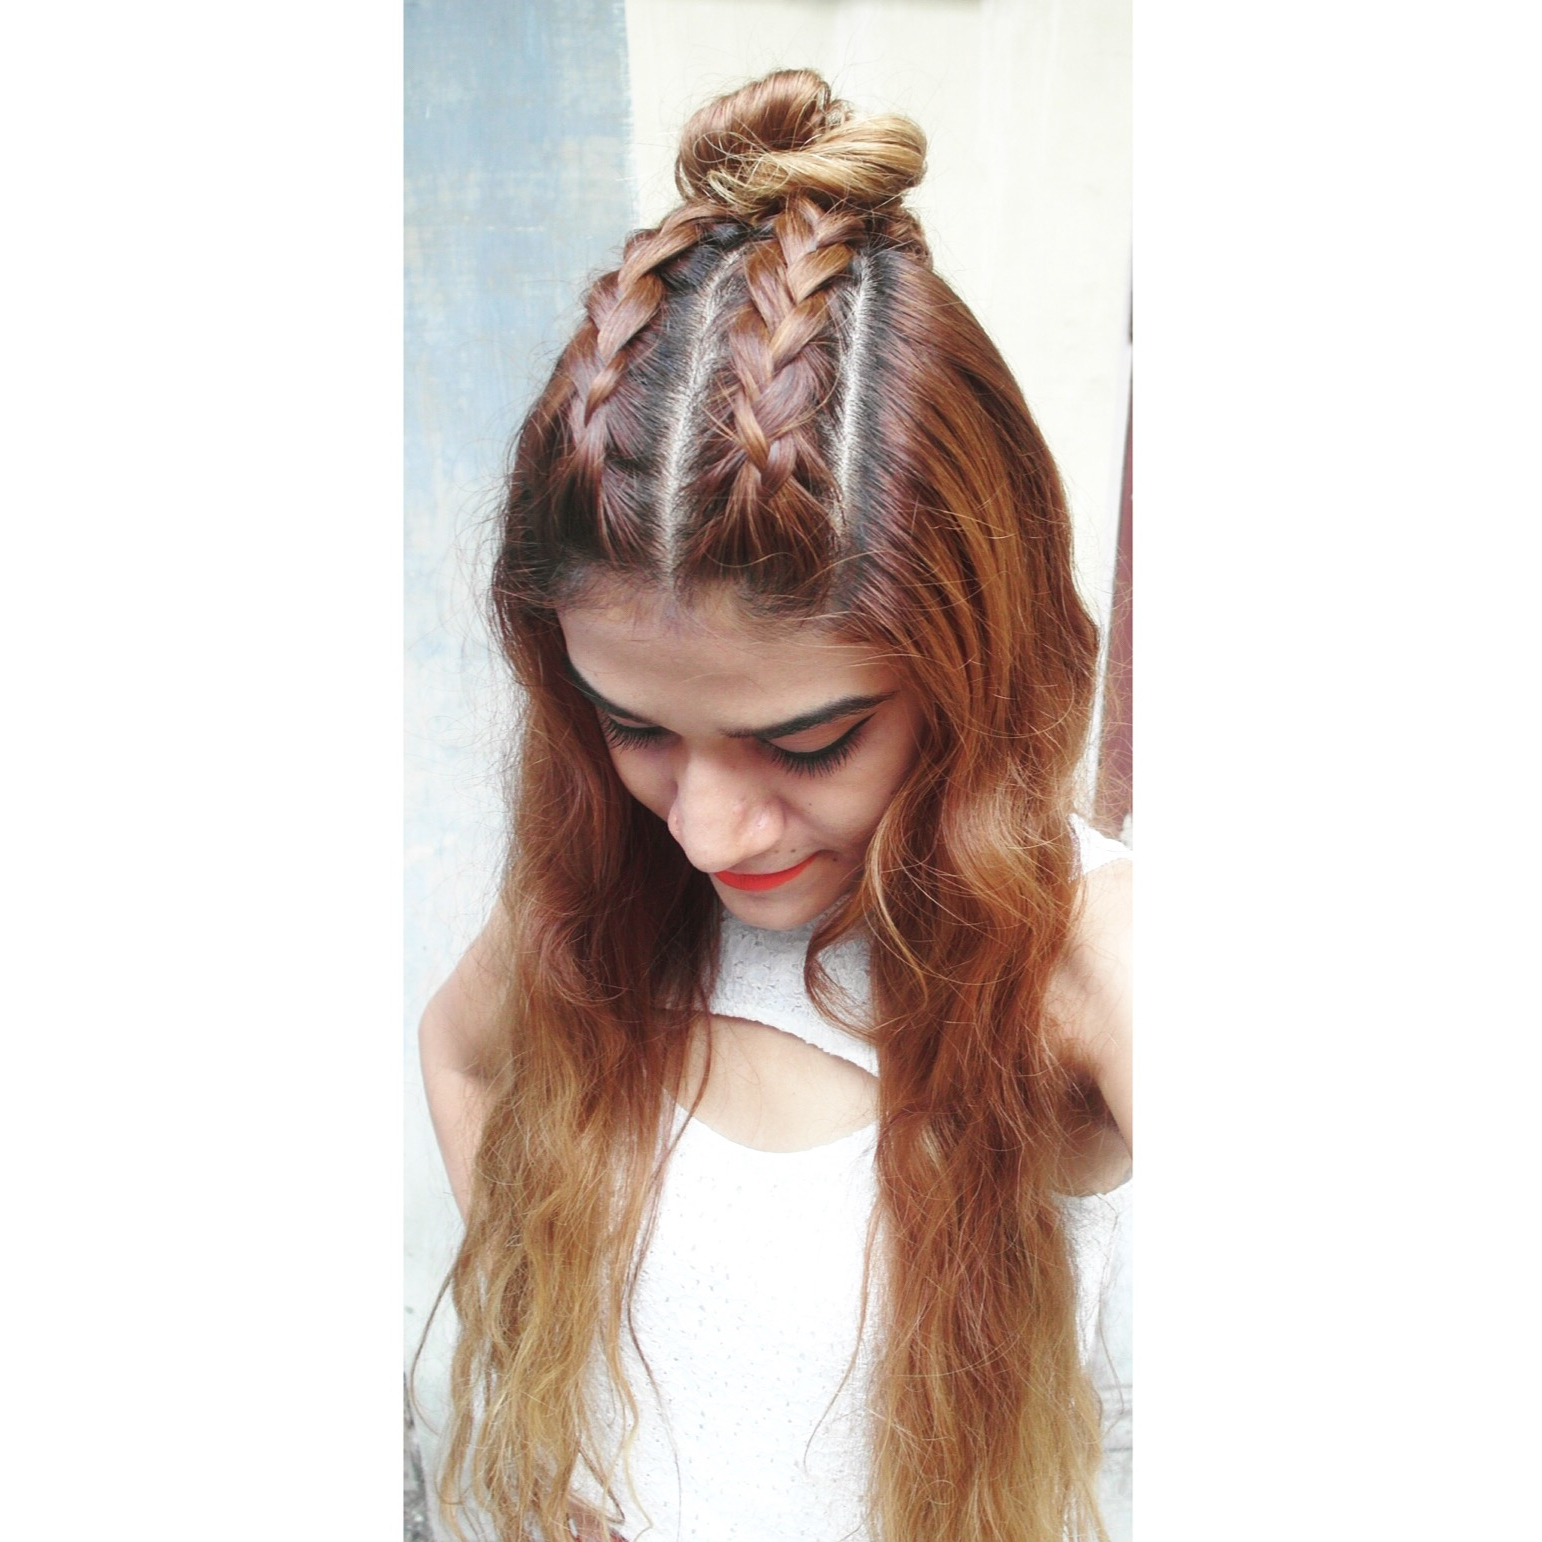 Recent Double Half Up Mermaid Braid Hairstyles Pertaining To Tanvi Vayla » Double Dutch Braid With Top Knot Half Up (View 11 of 20)